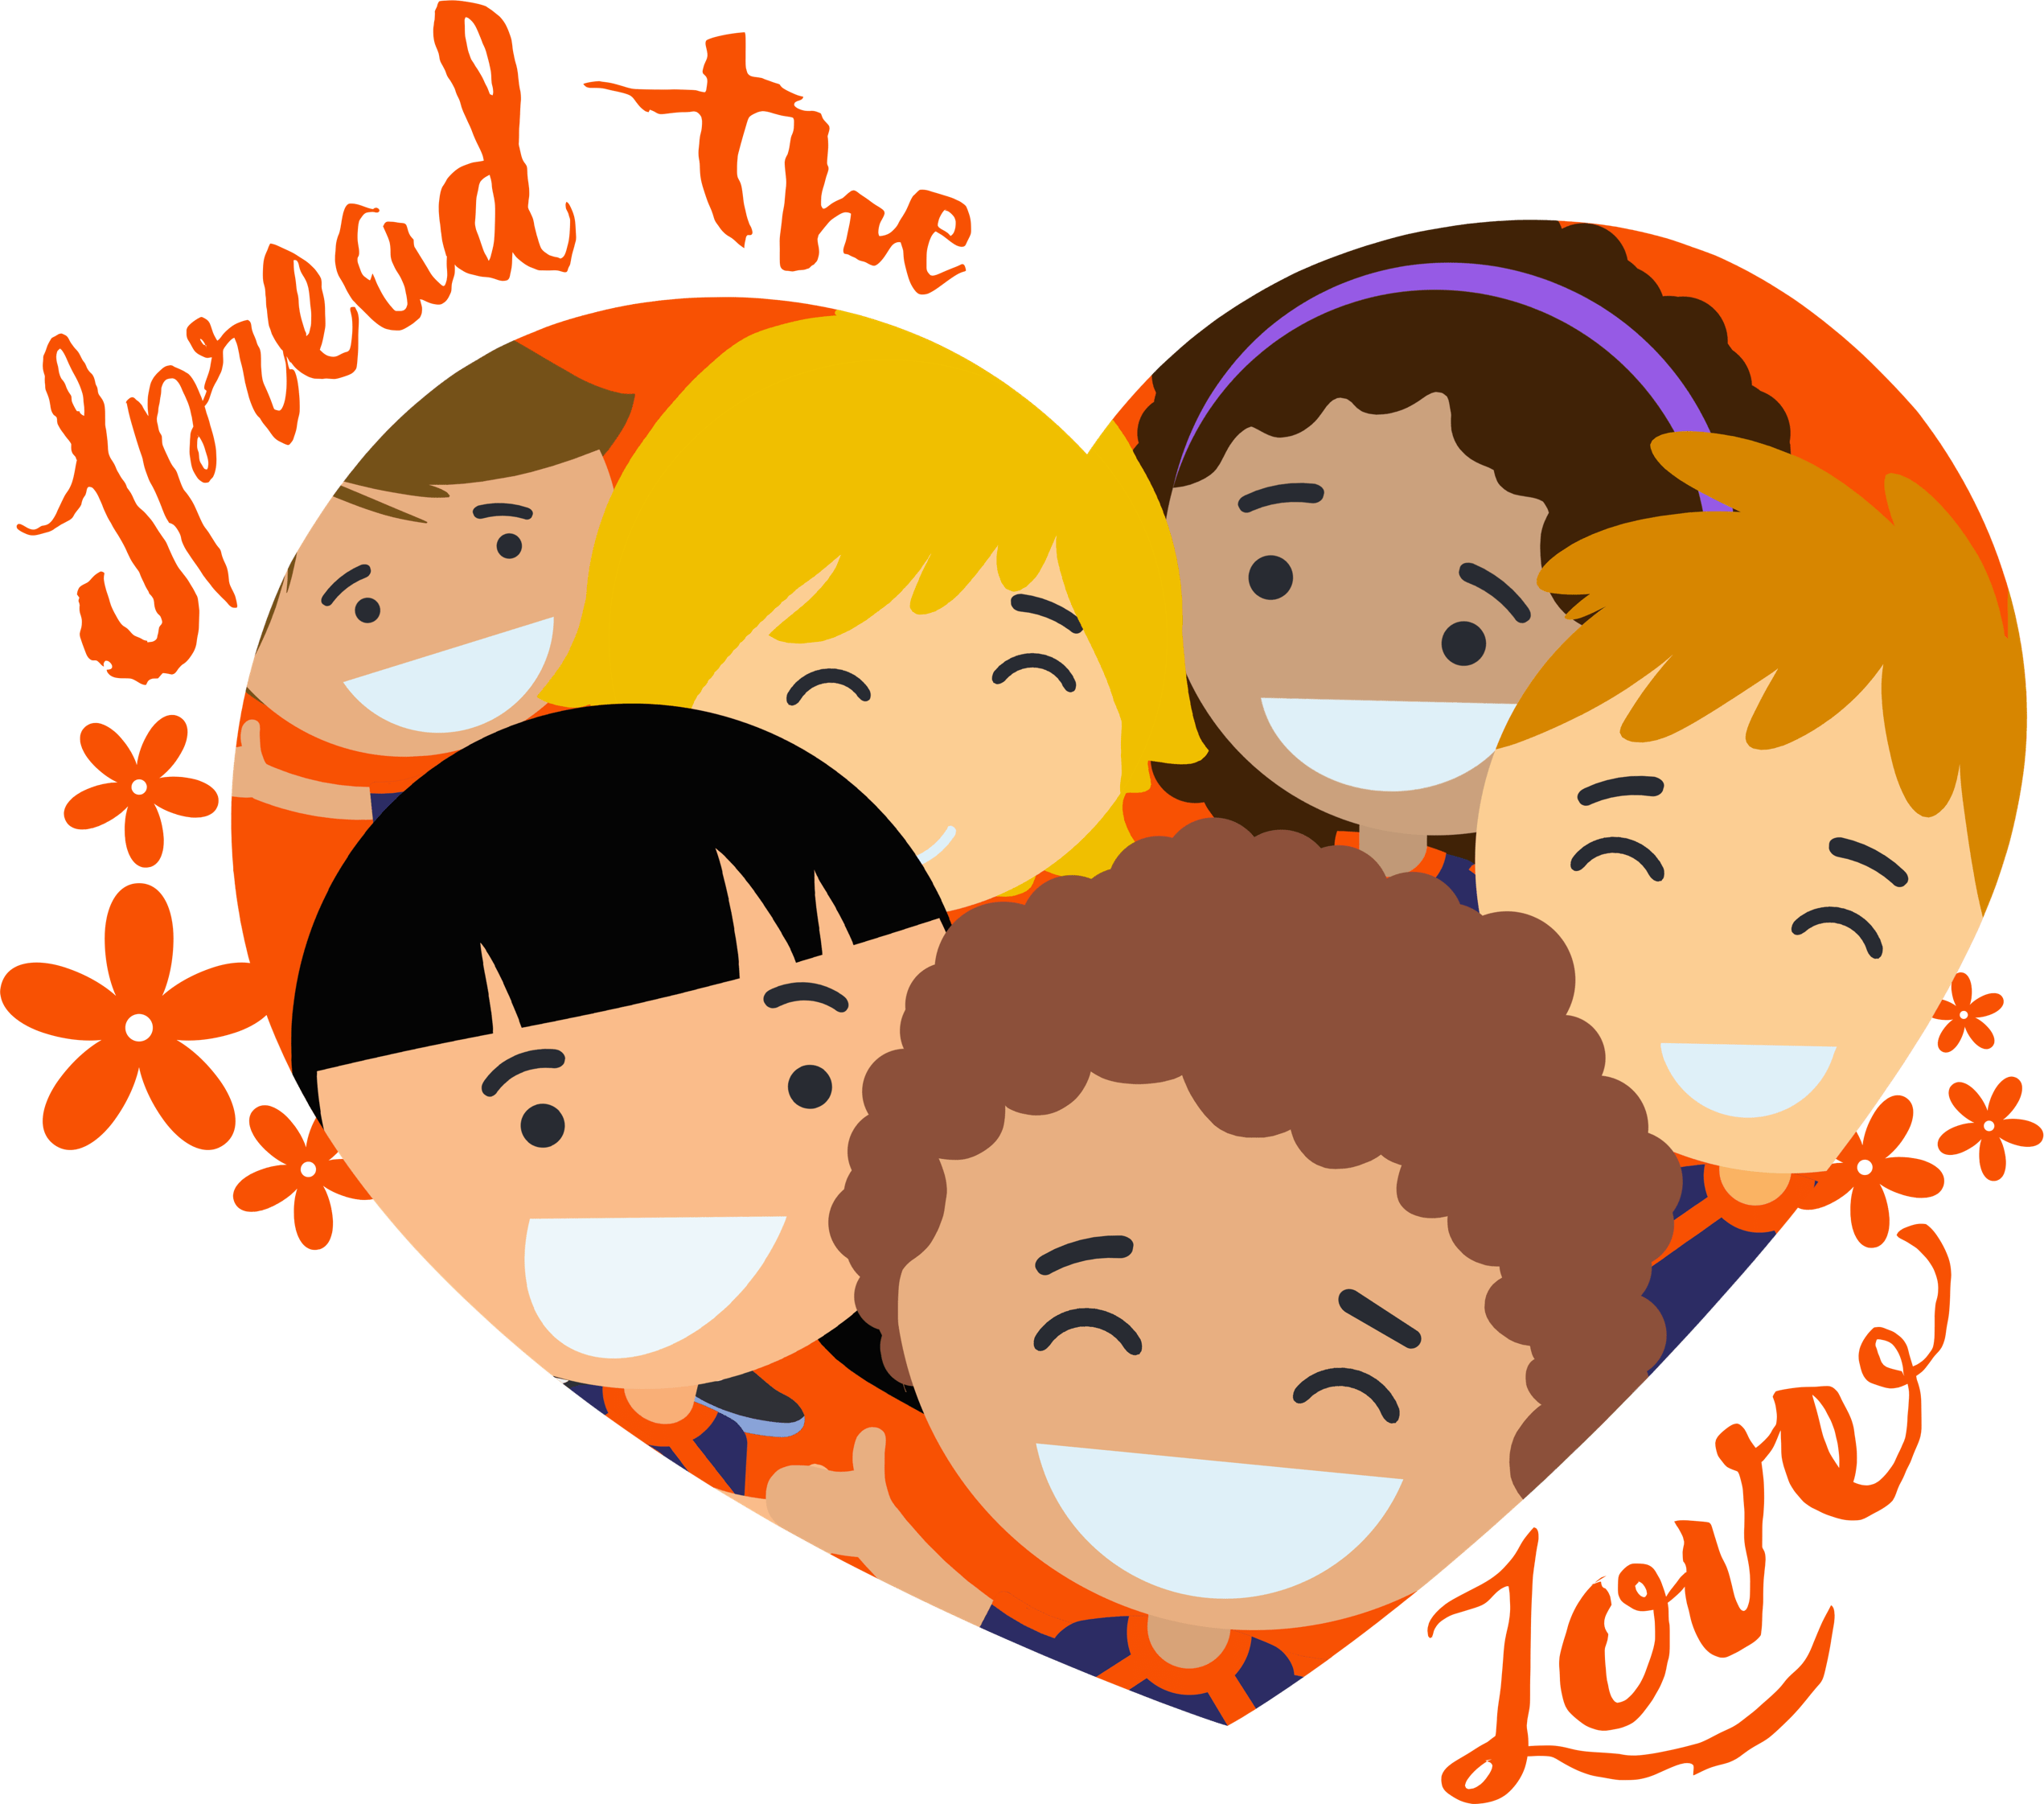 Clo week landing page. Kindness clipart other clipart